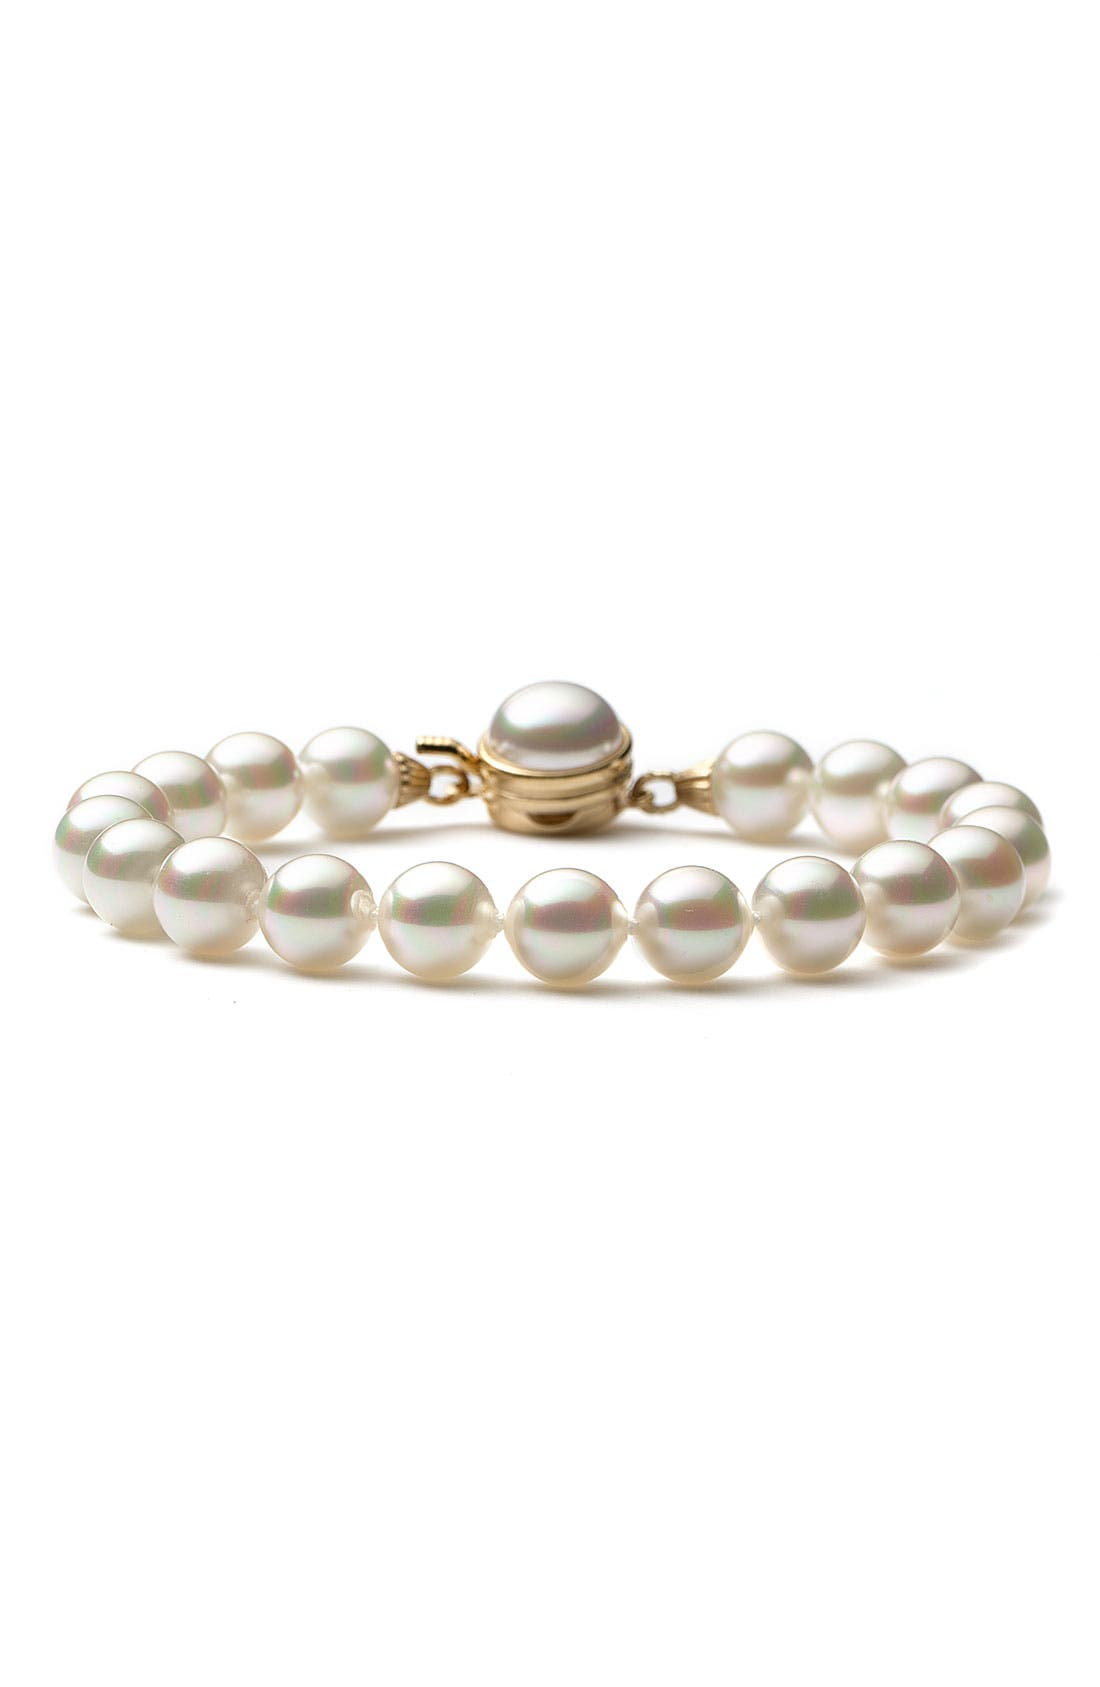 8mm Single Row Pearl Bracelet,                             Alternate thumbnail 3, color,                             White/ Gold